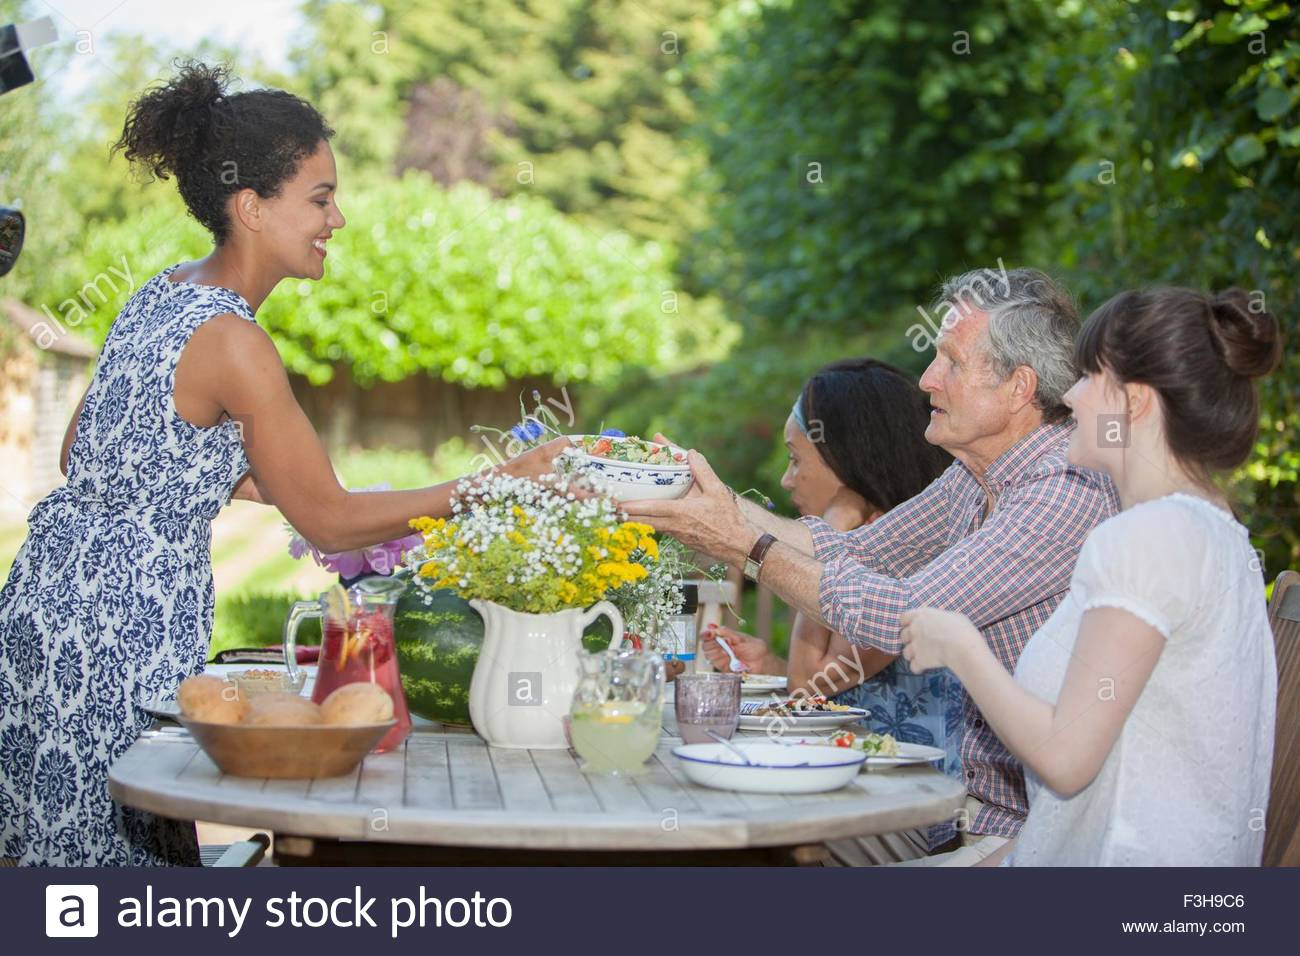 Family enjoying meal, outdoors - Stock Image